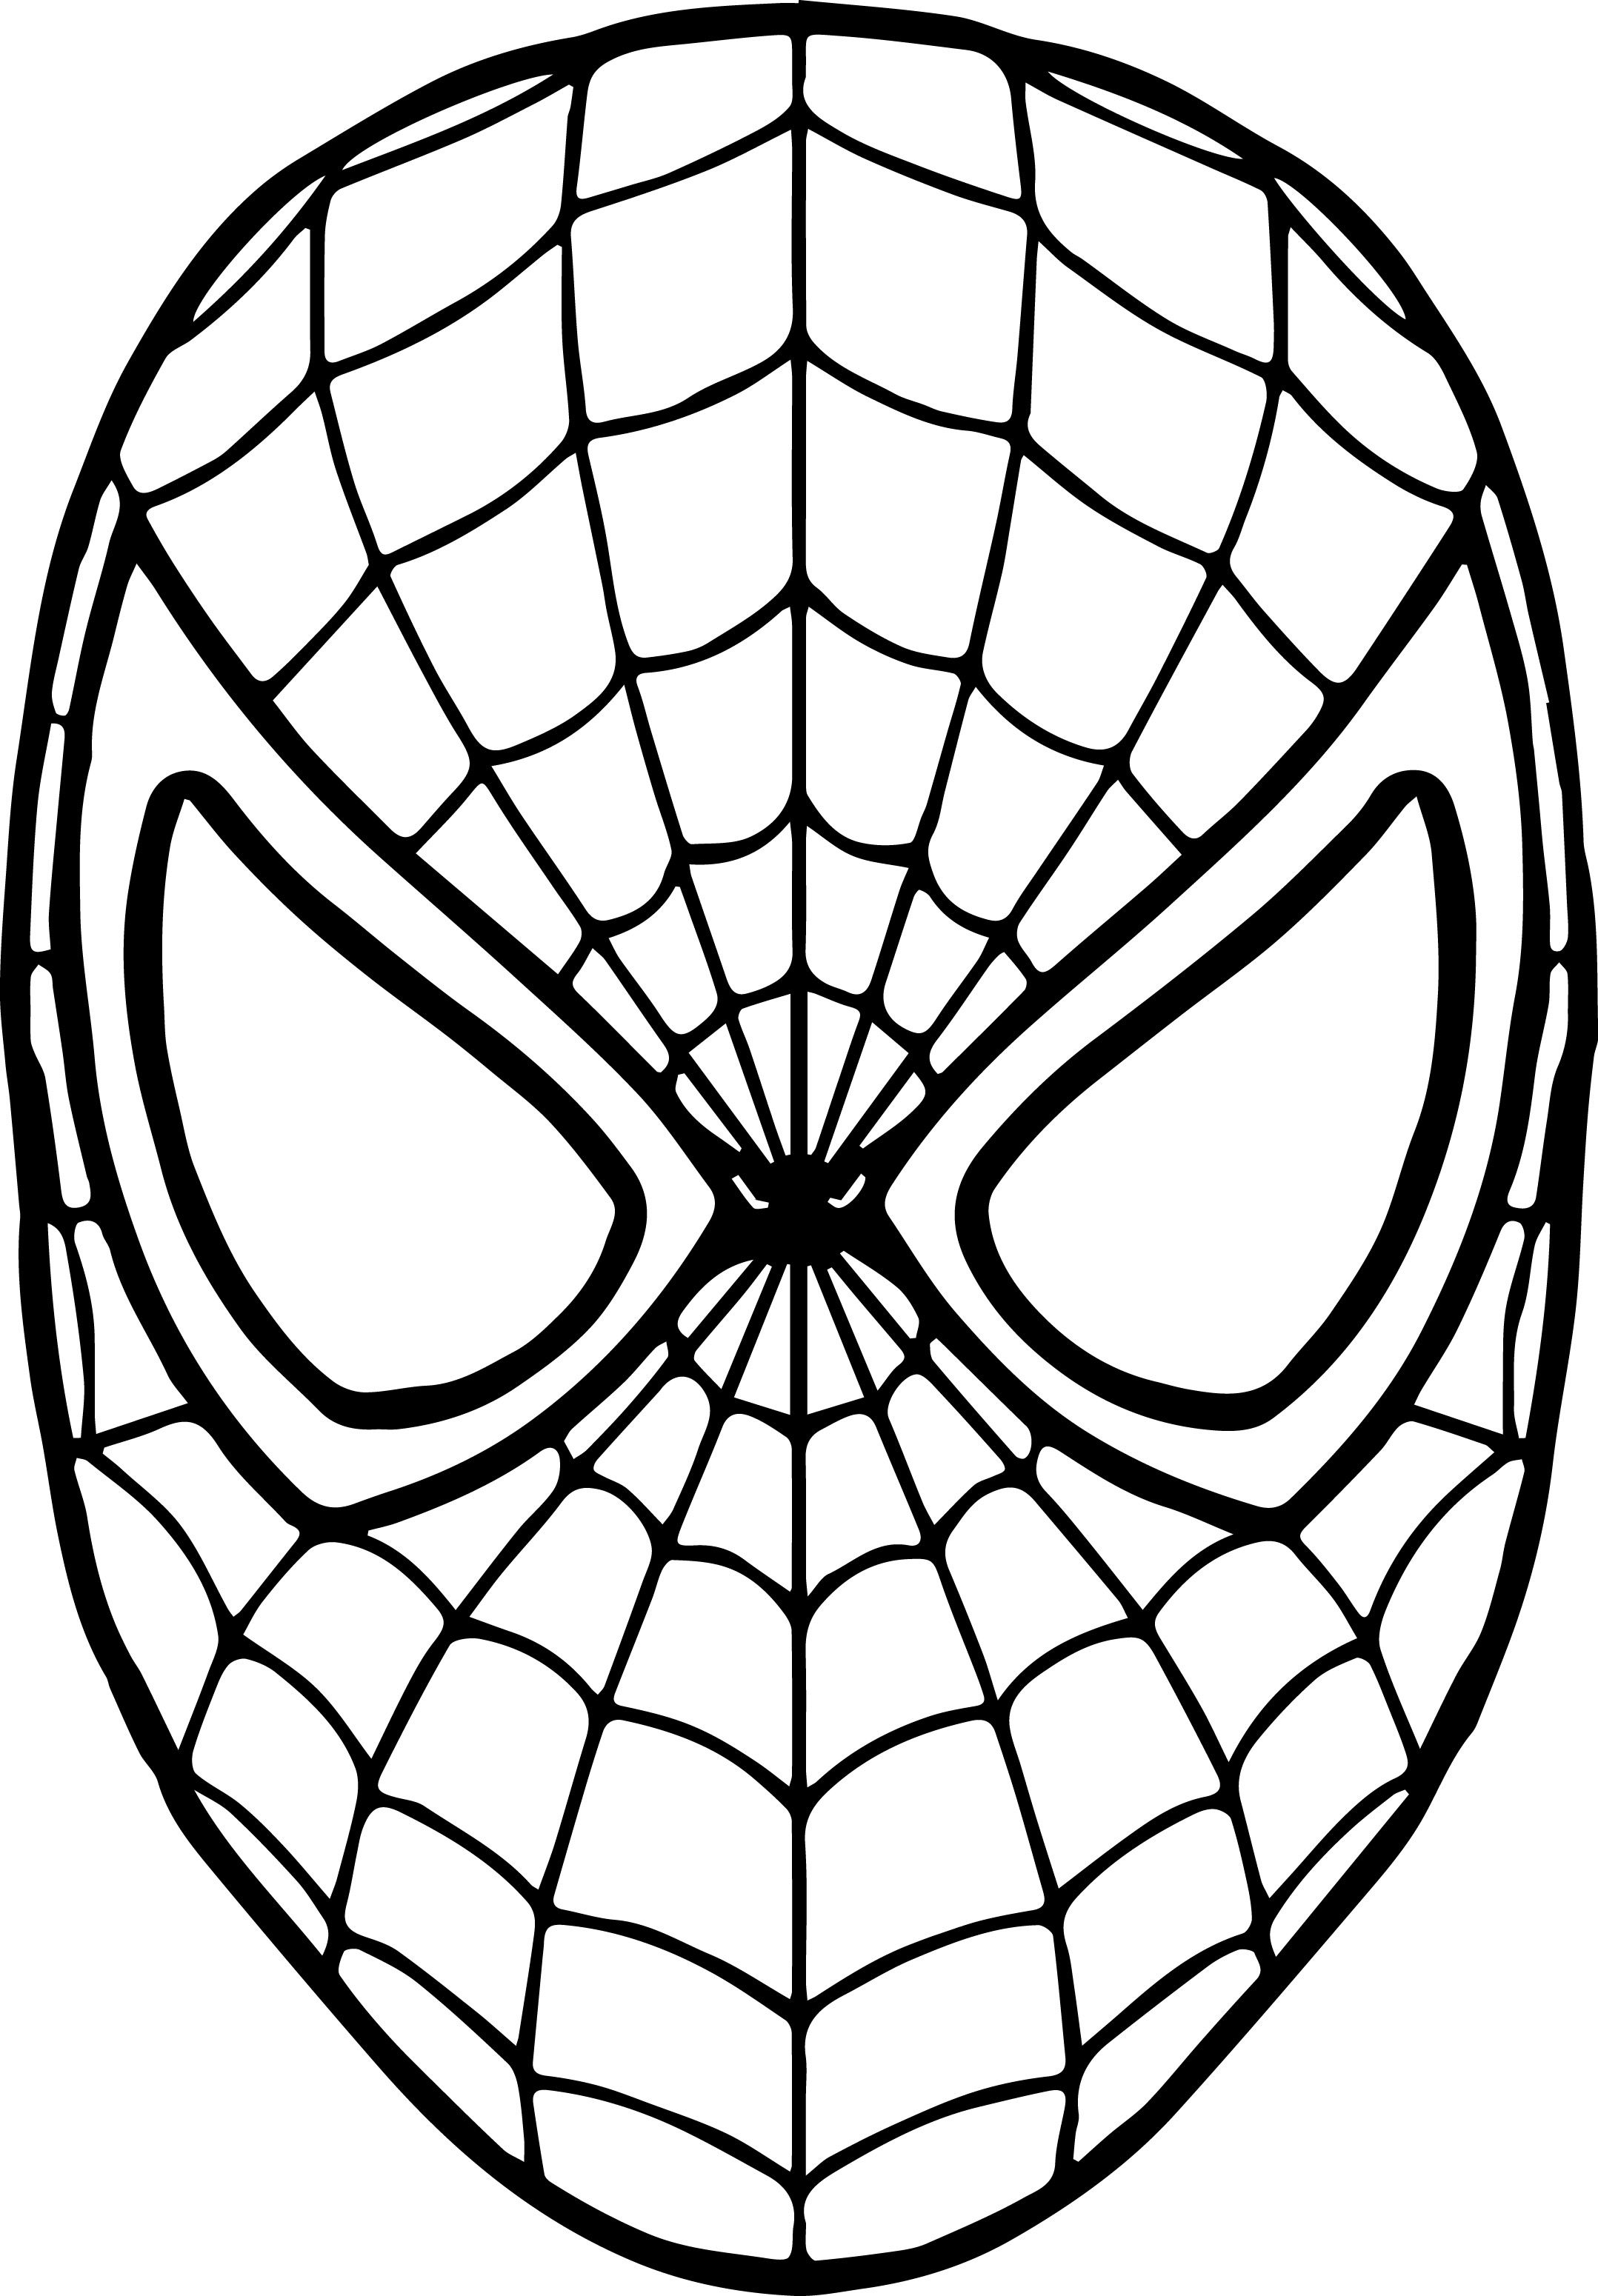 Spiderman mask coloring